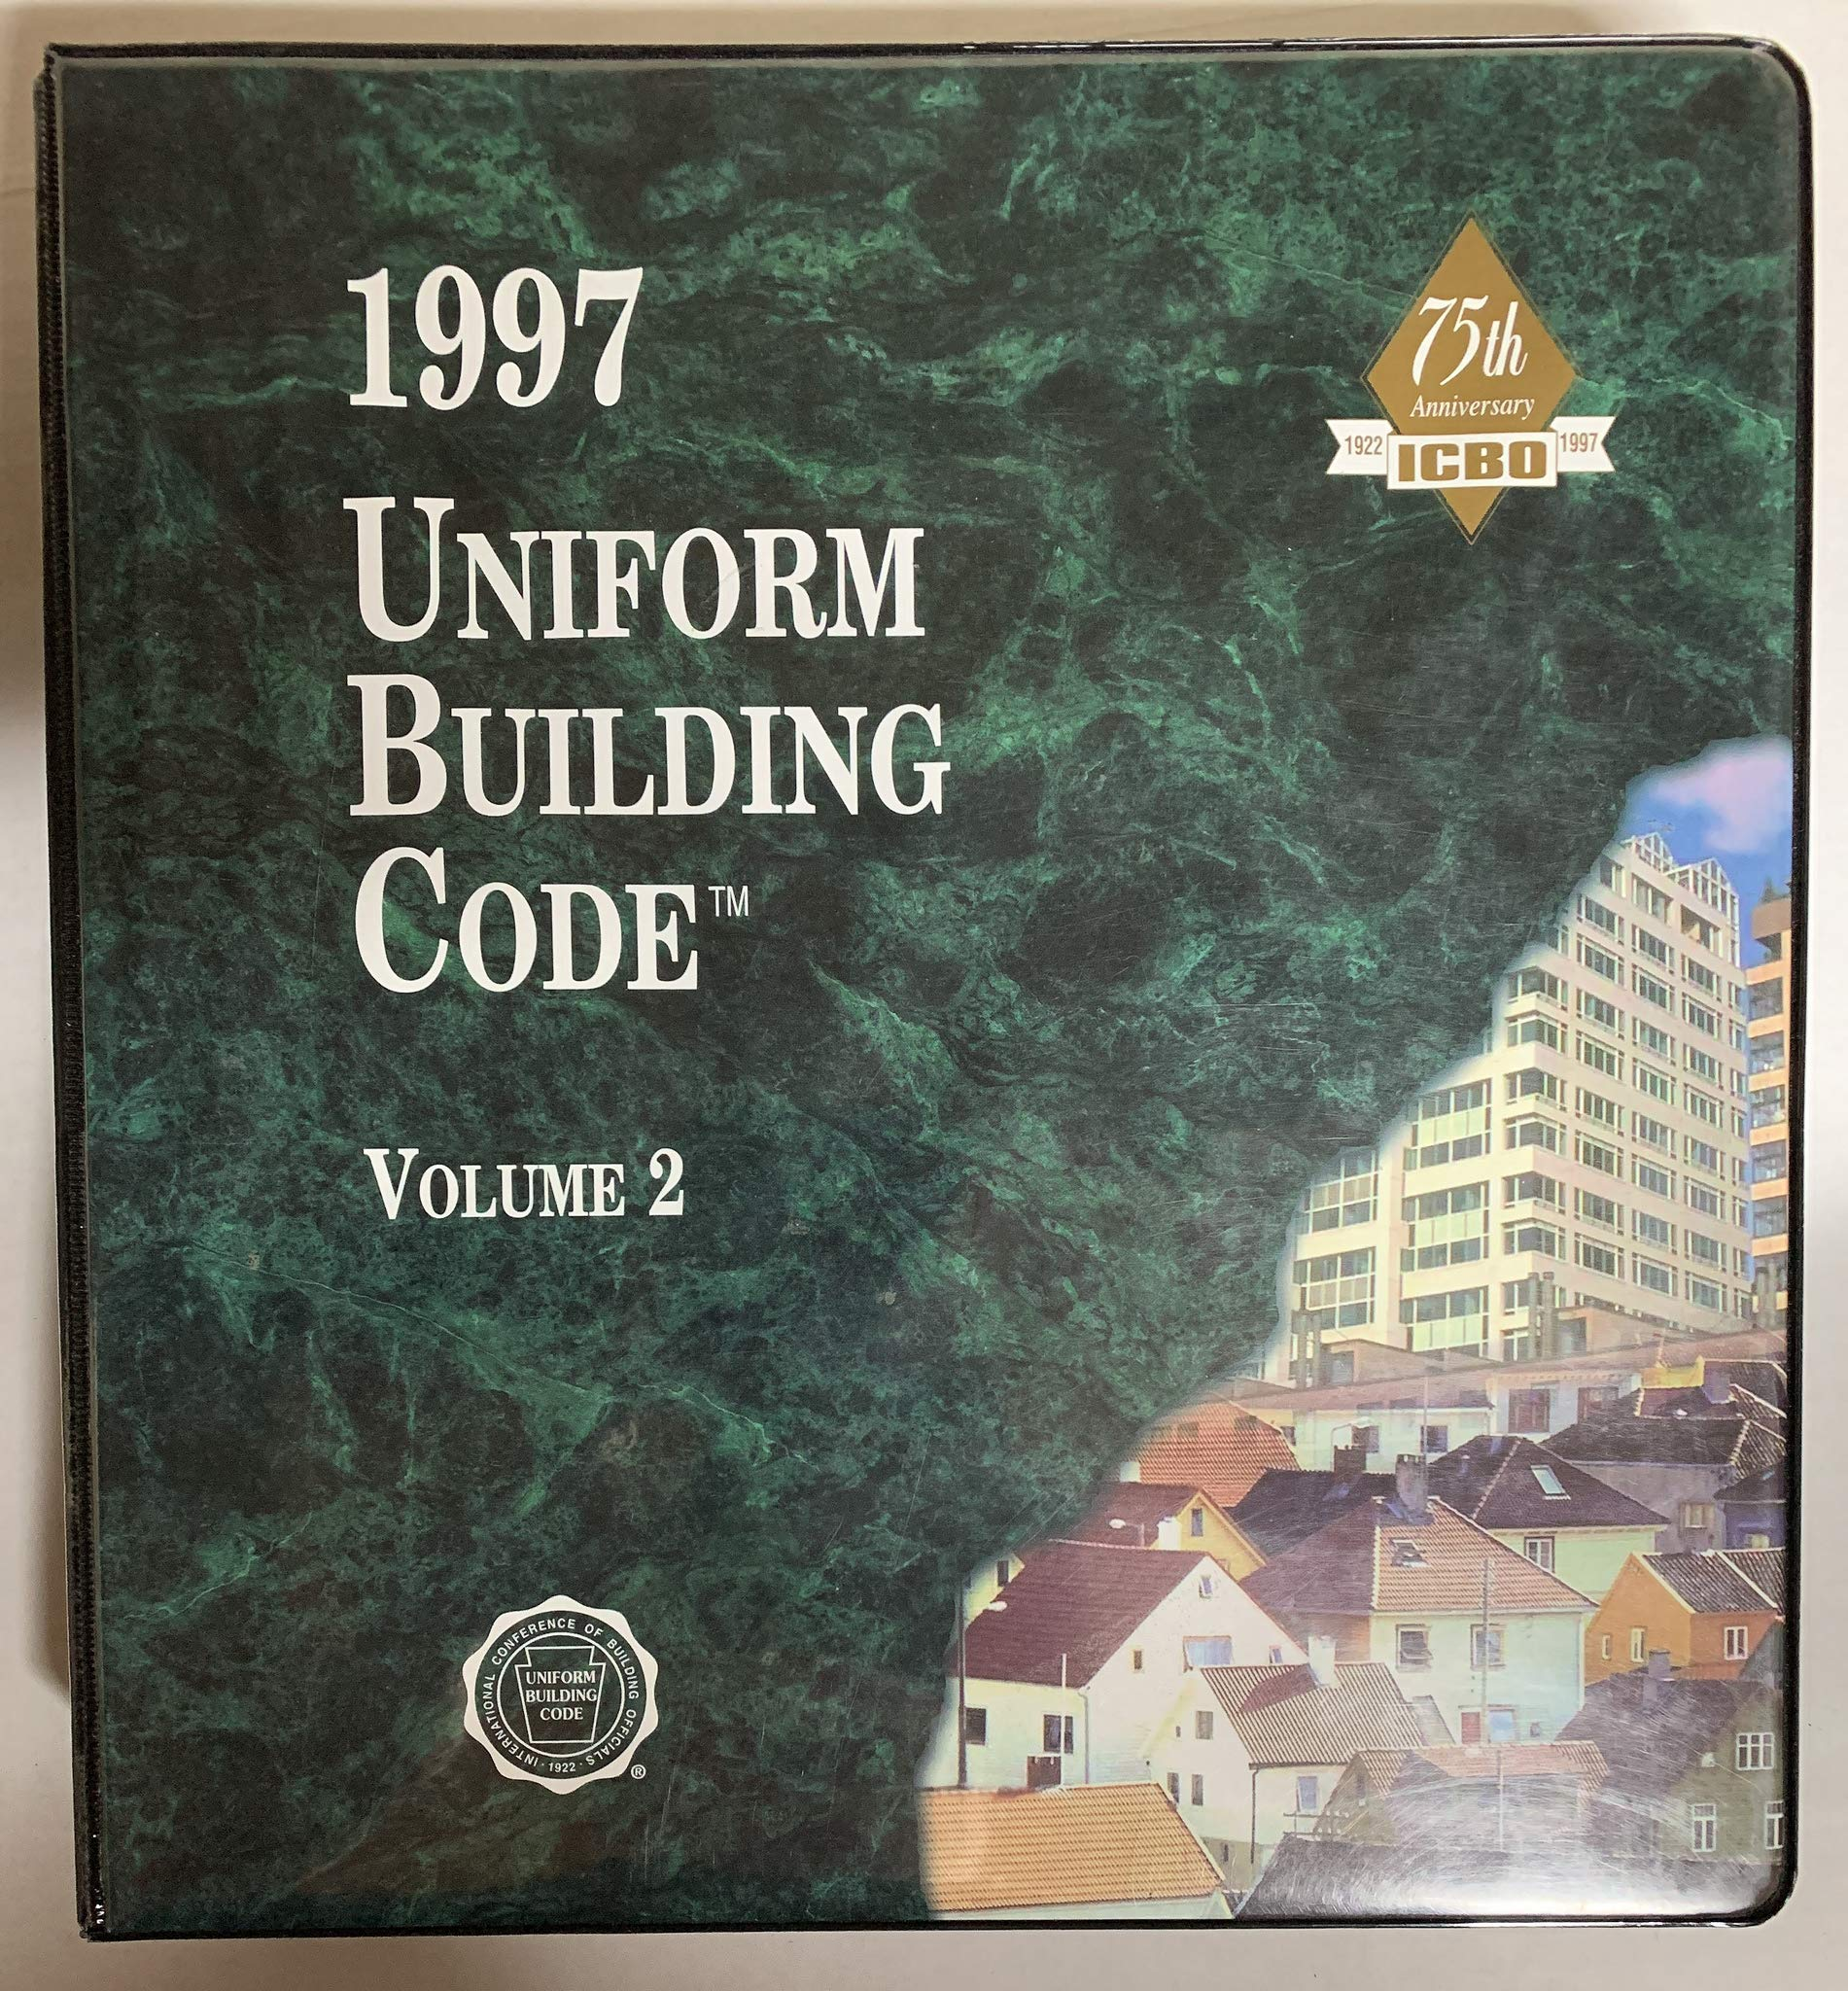 1997 Uniform Building Code, Vol. 2: Structural Engineering Design Provisions